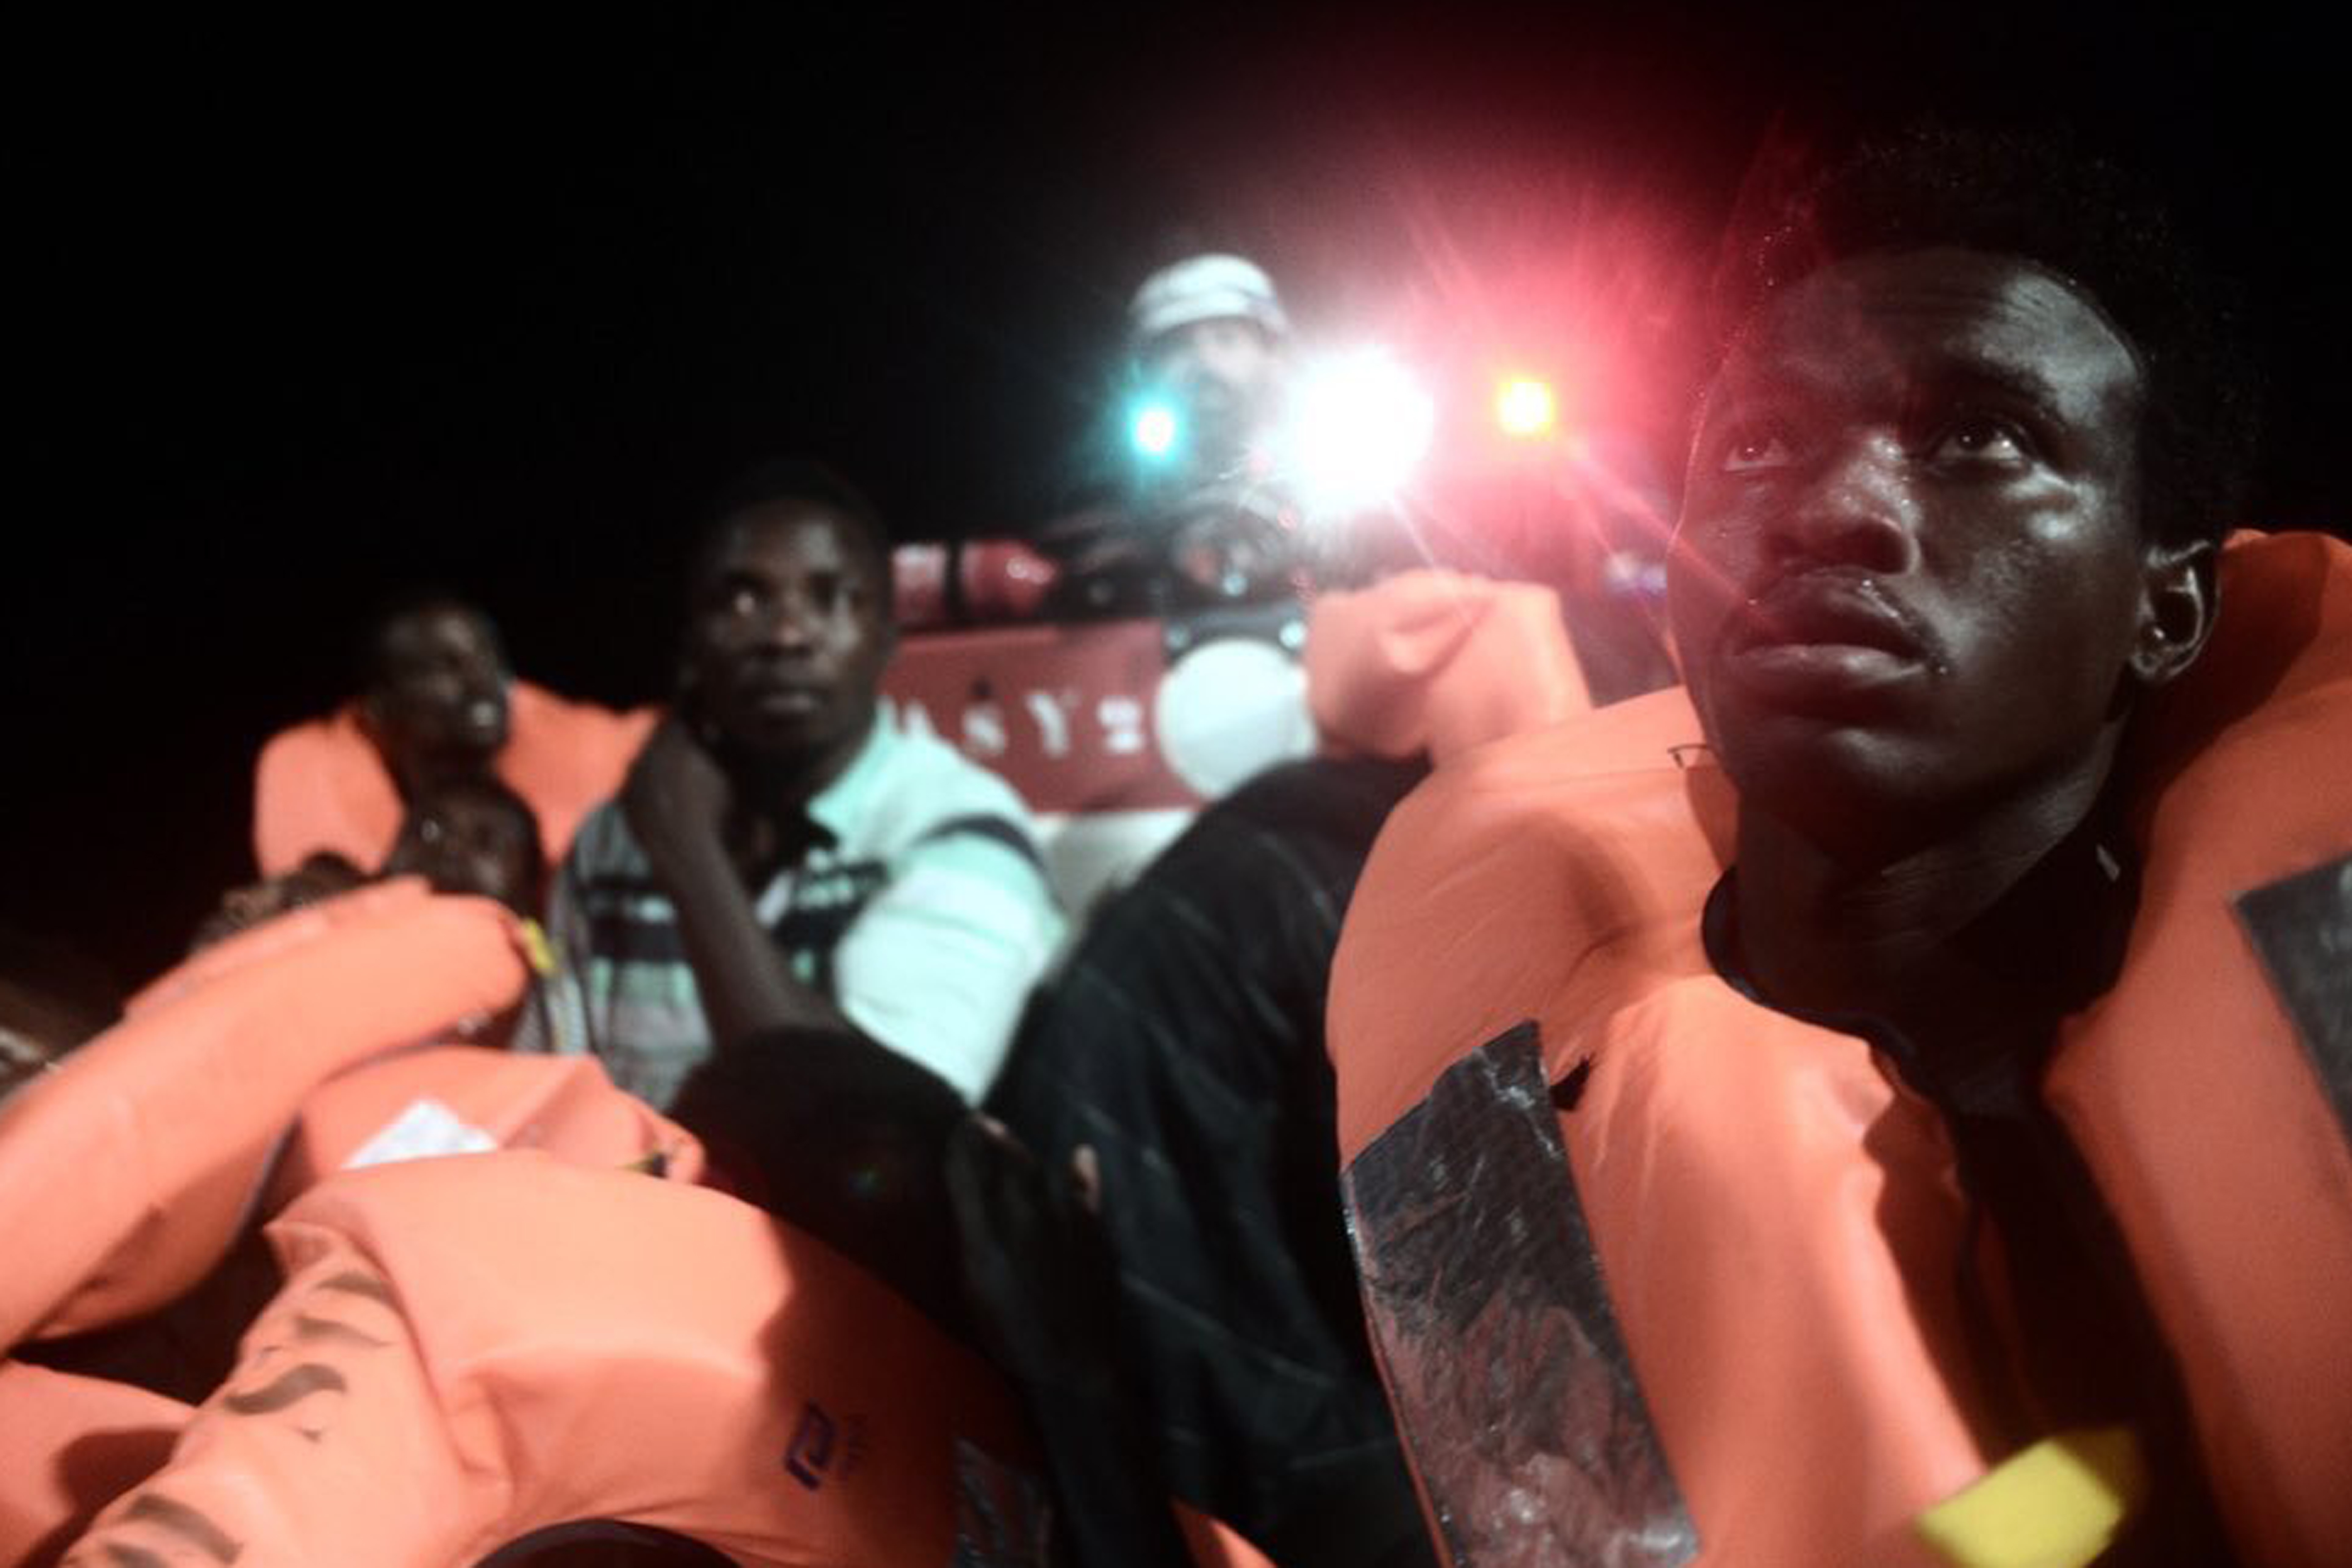 Italy shuts ports to ship with more than 600 migrants